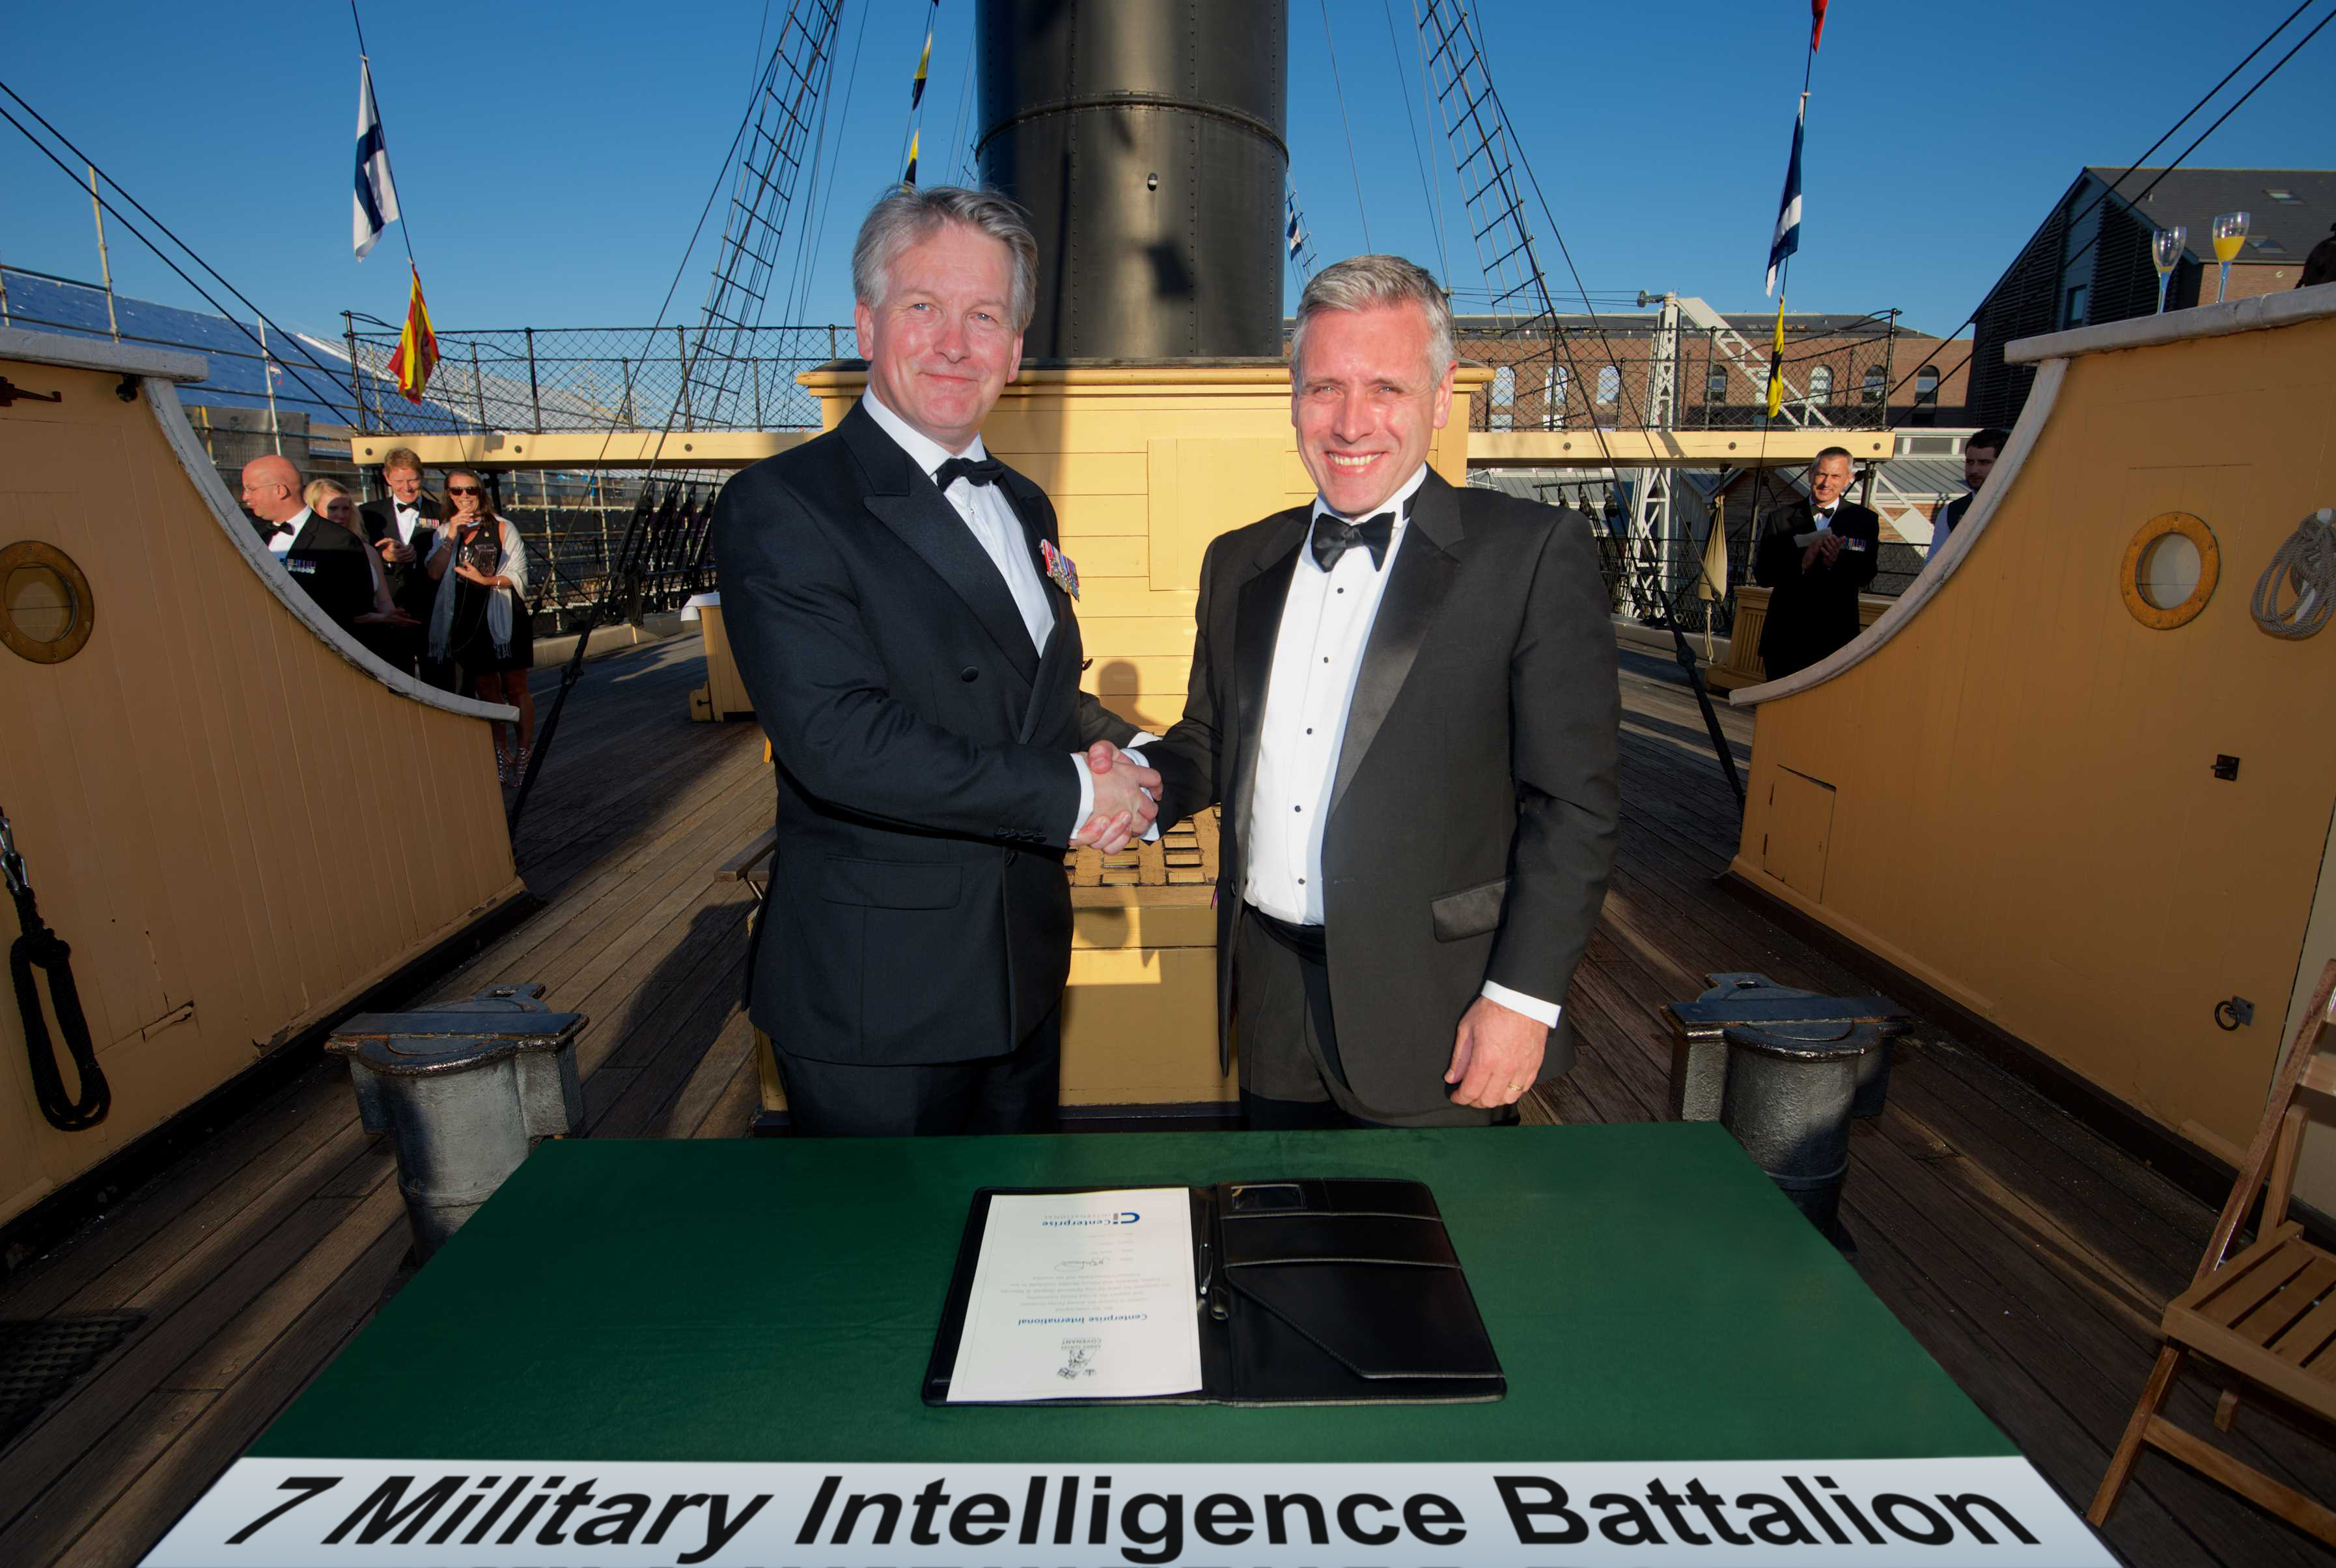 Centerprise International signs the Armed Forces Covenant